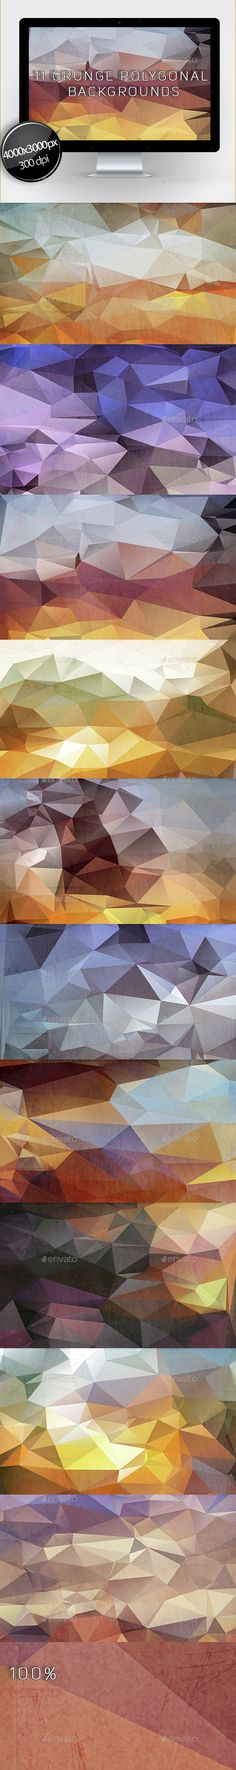 11 Grunge Polygonal Backgrounds by Aleksandra_BETEP Includes 10 jpg